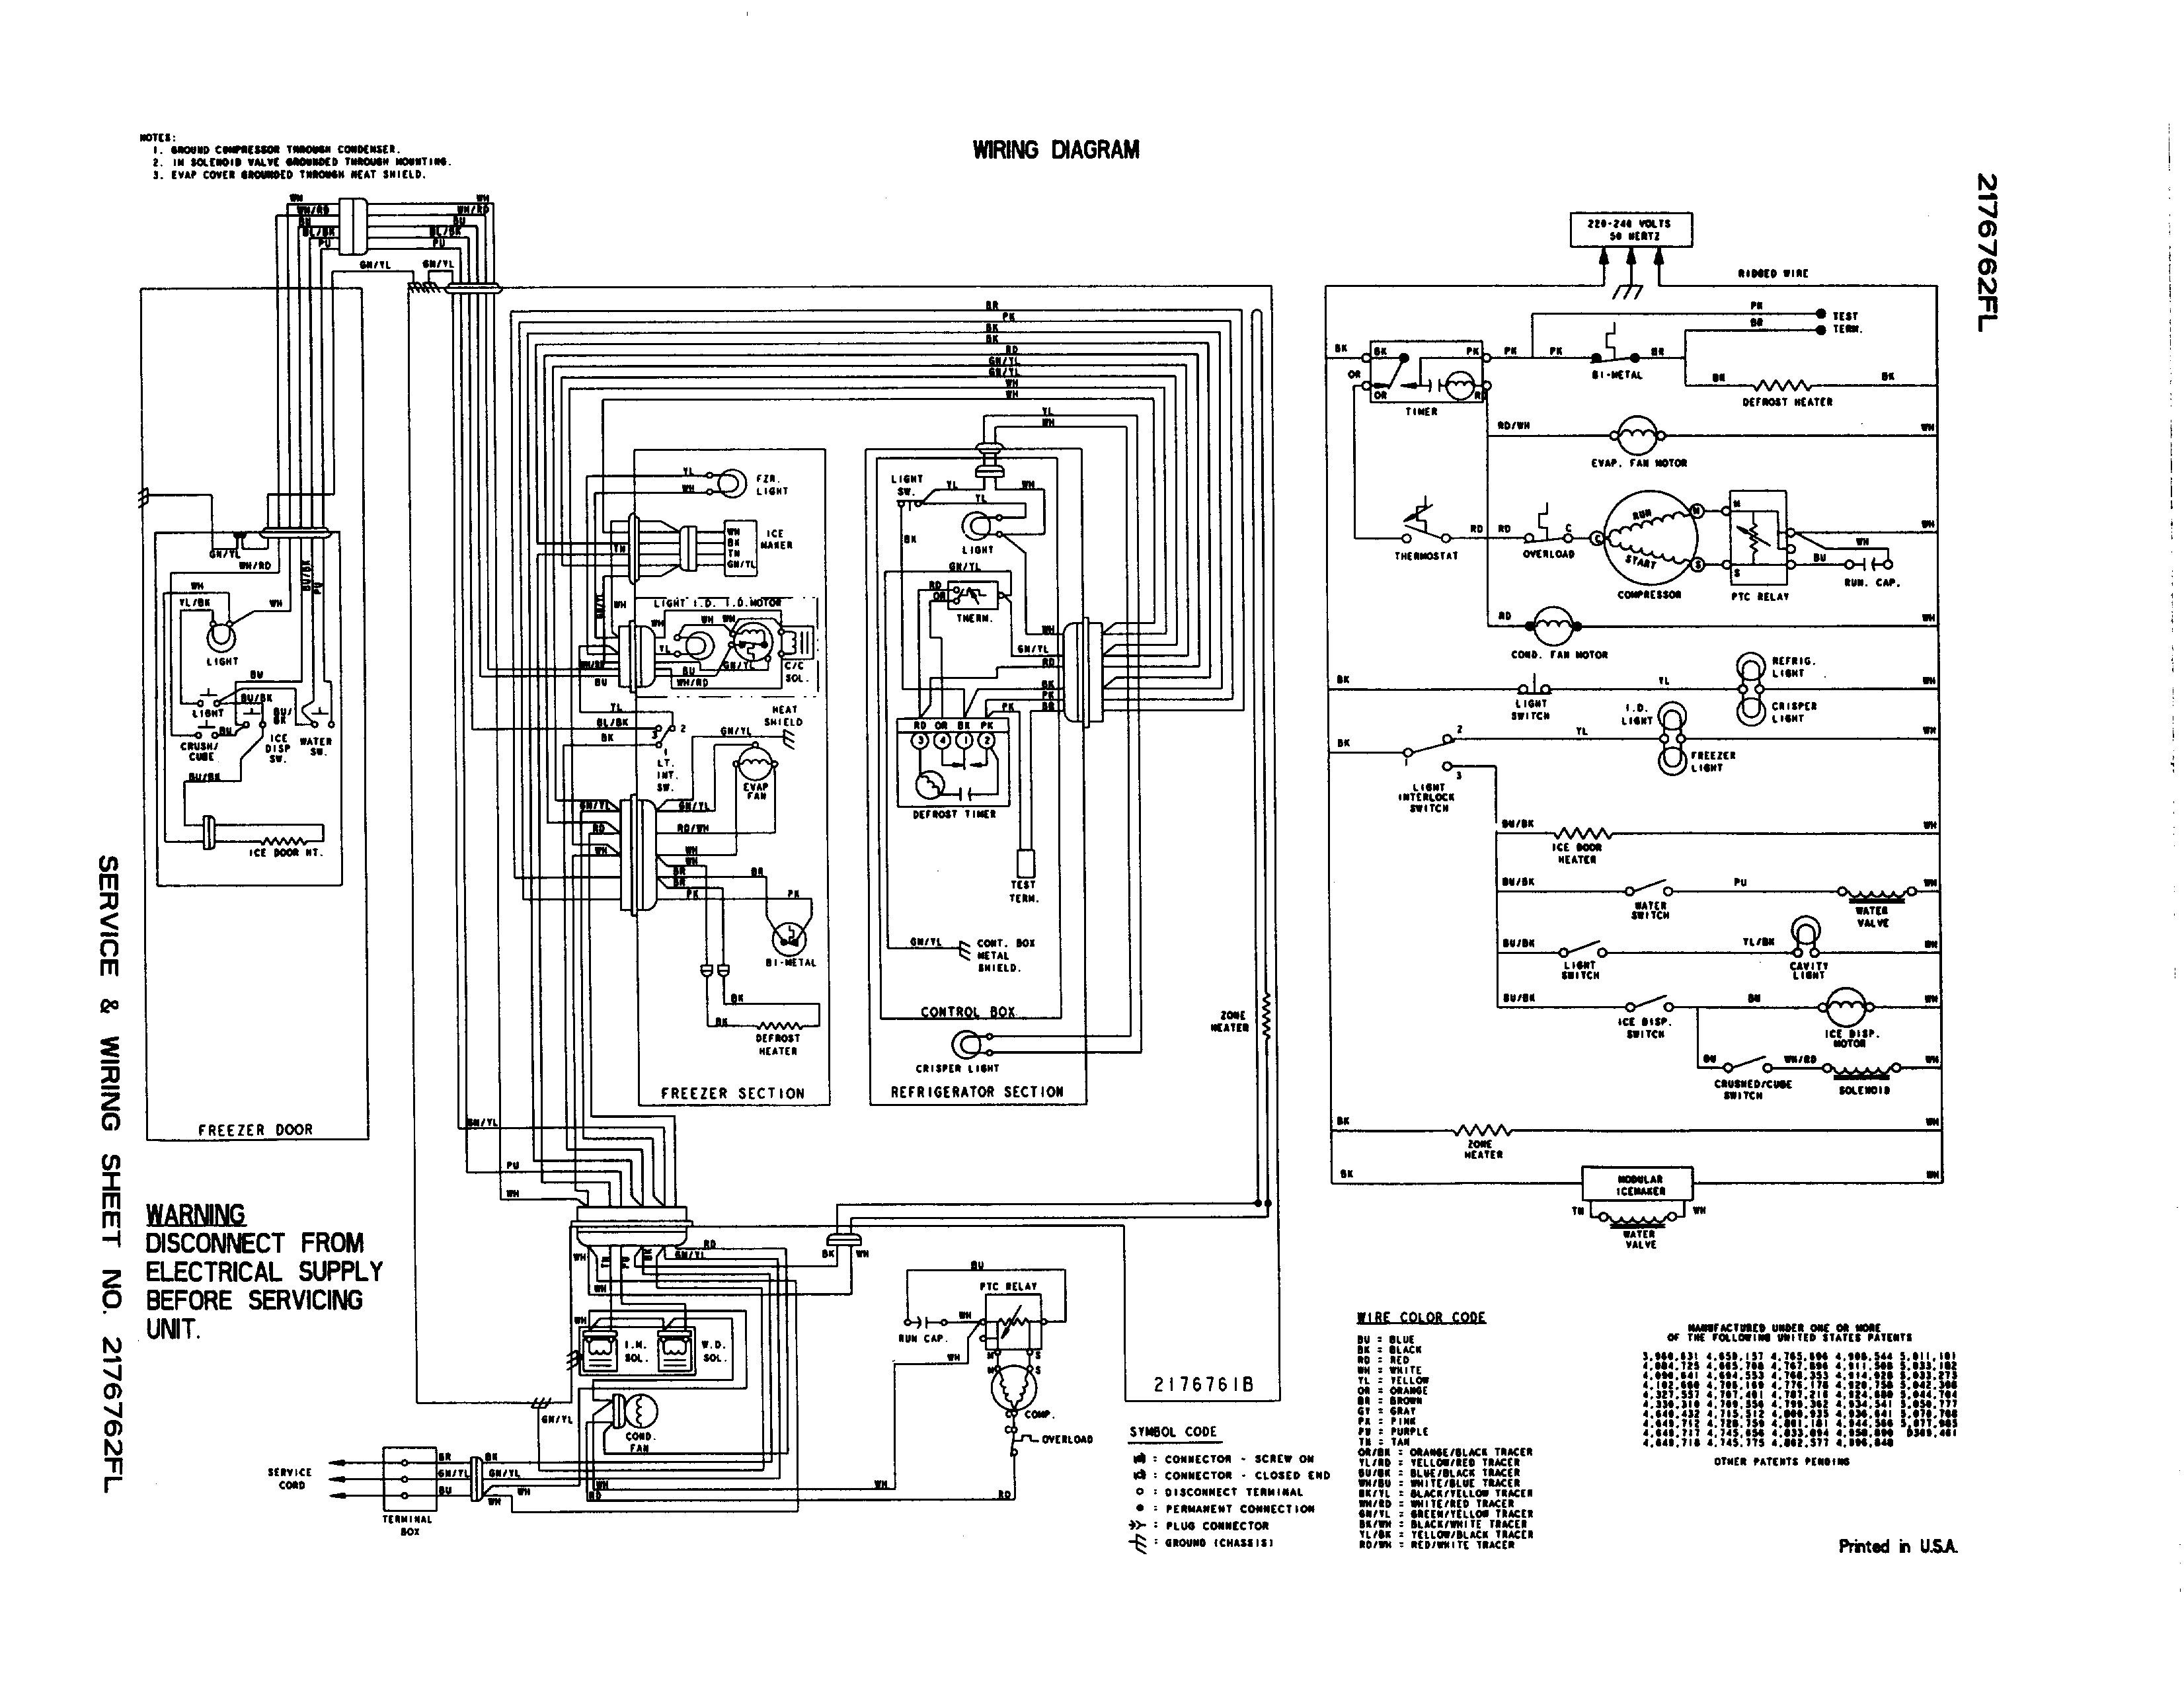 Whirlpool Gold Refrigerator Wiring Diagram | Wiring Diagram - Refrigerator Wiring Diagram Pdf